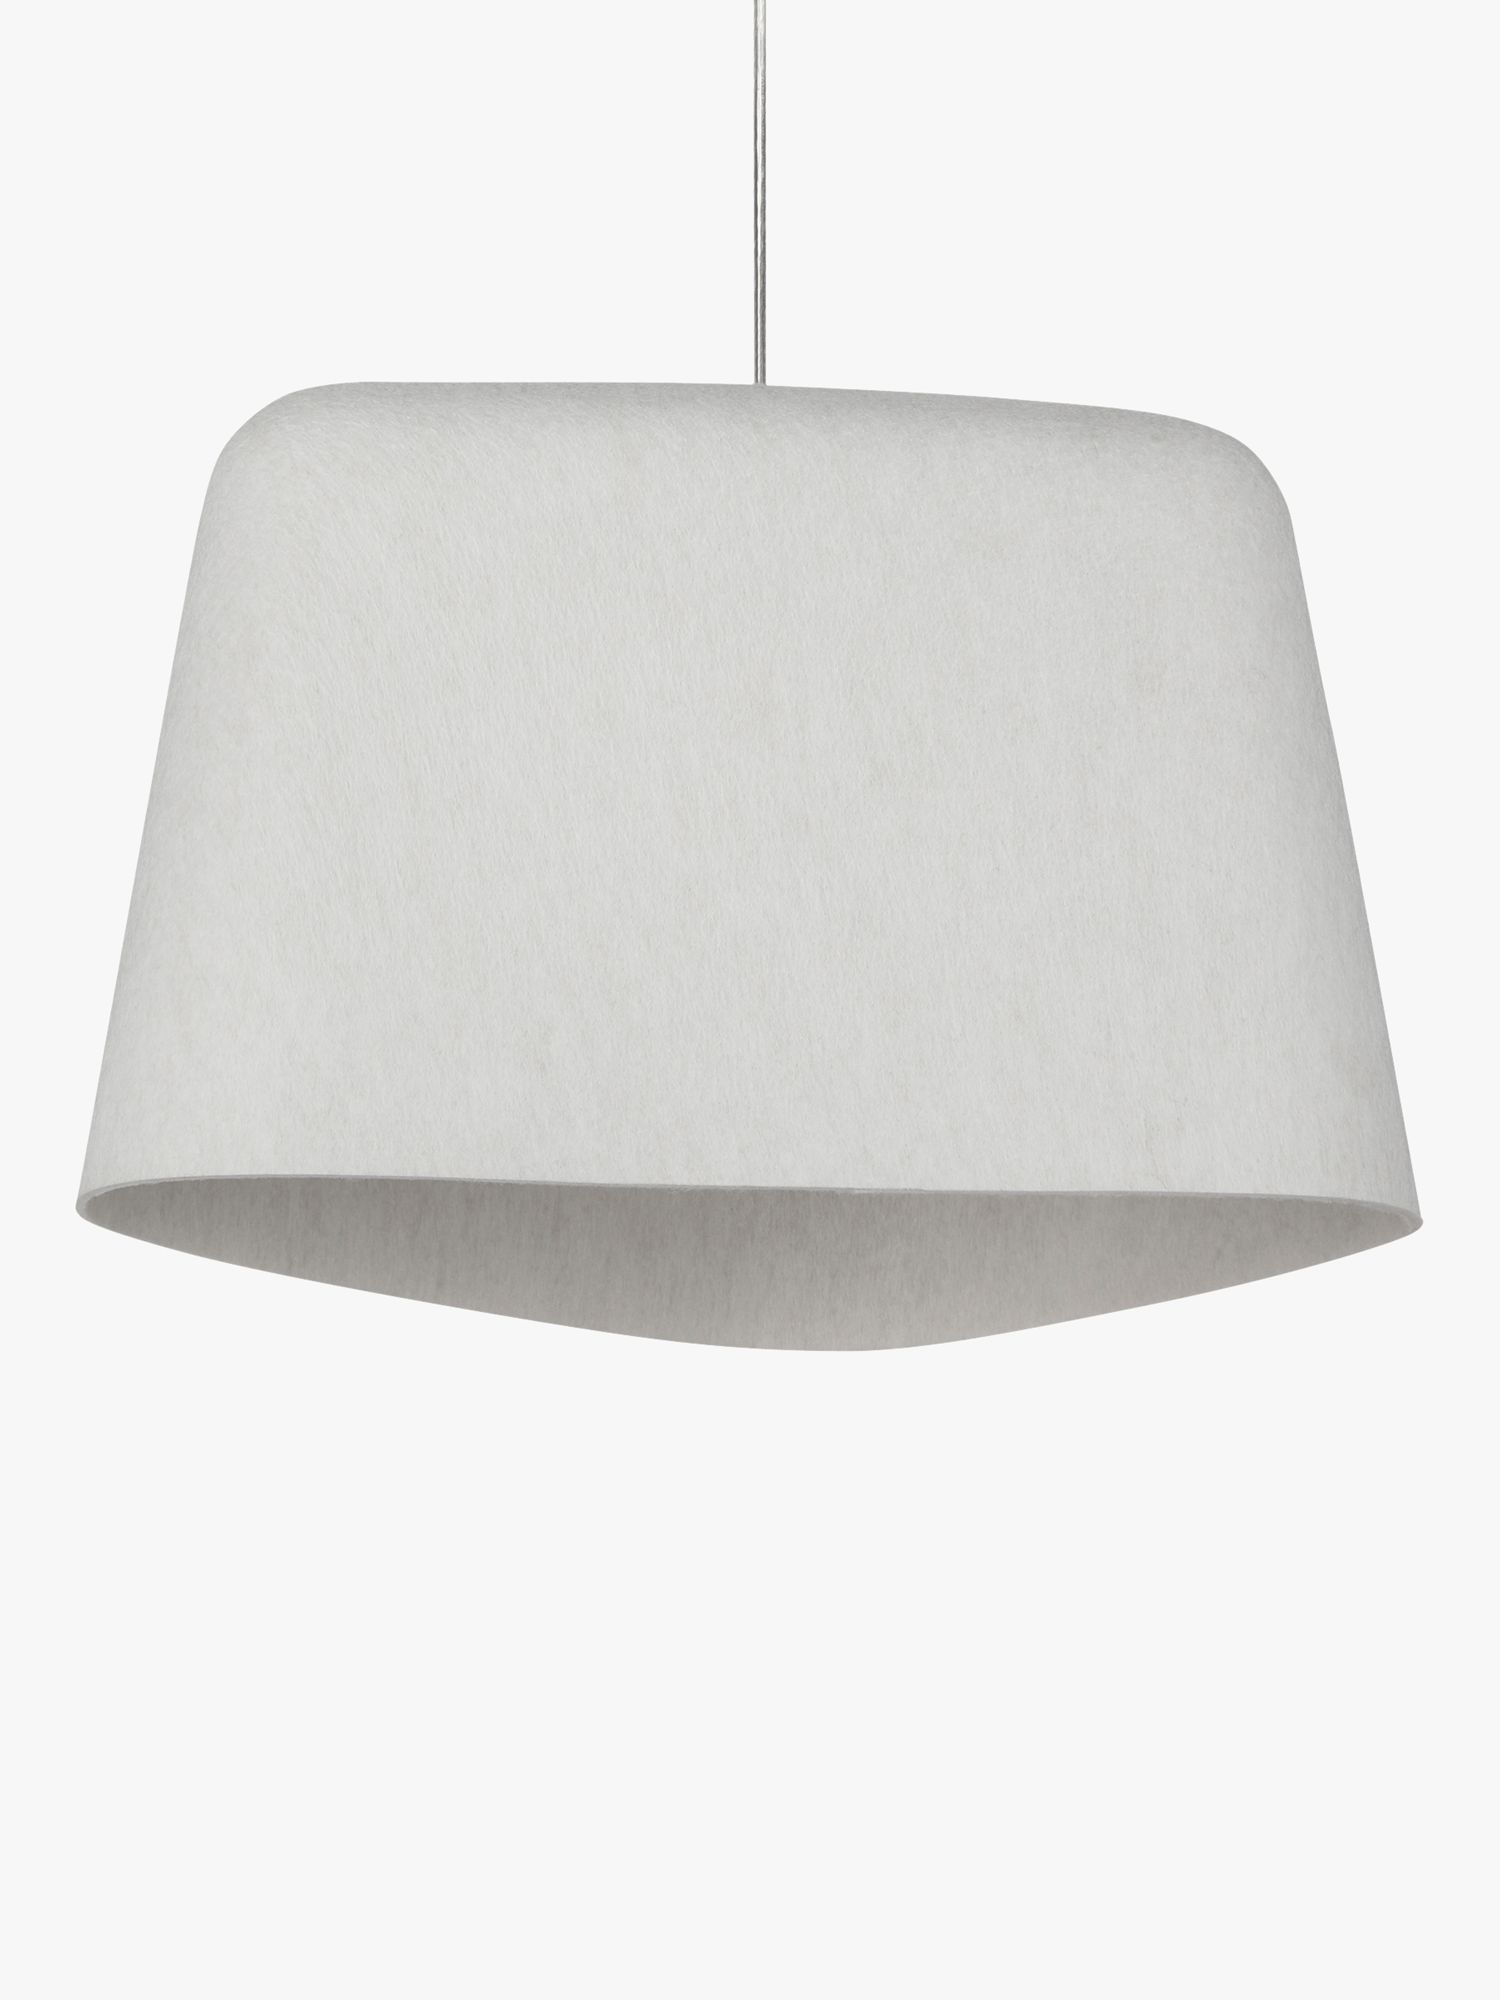 Lighting Clearance Table Lamps Ceiling Wall Lights Sale John Lewis